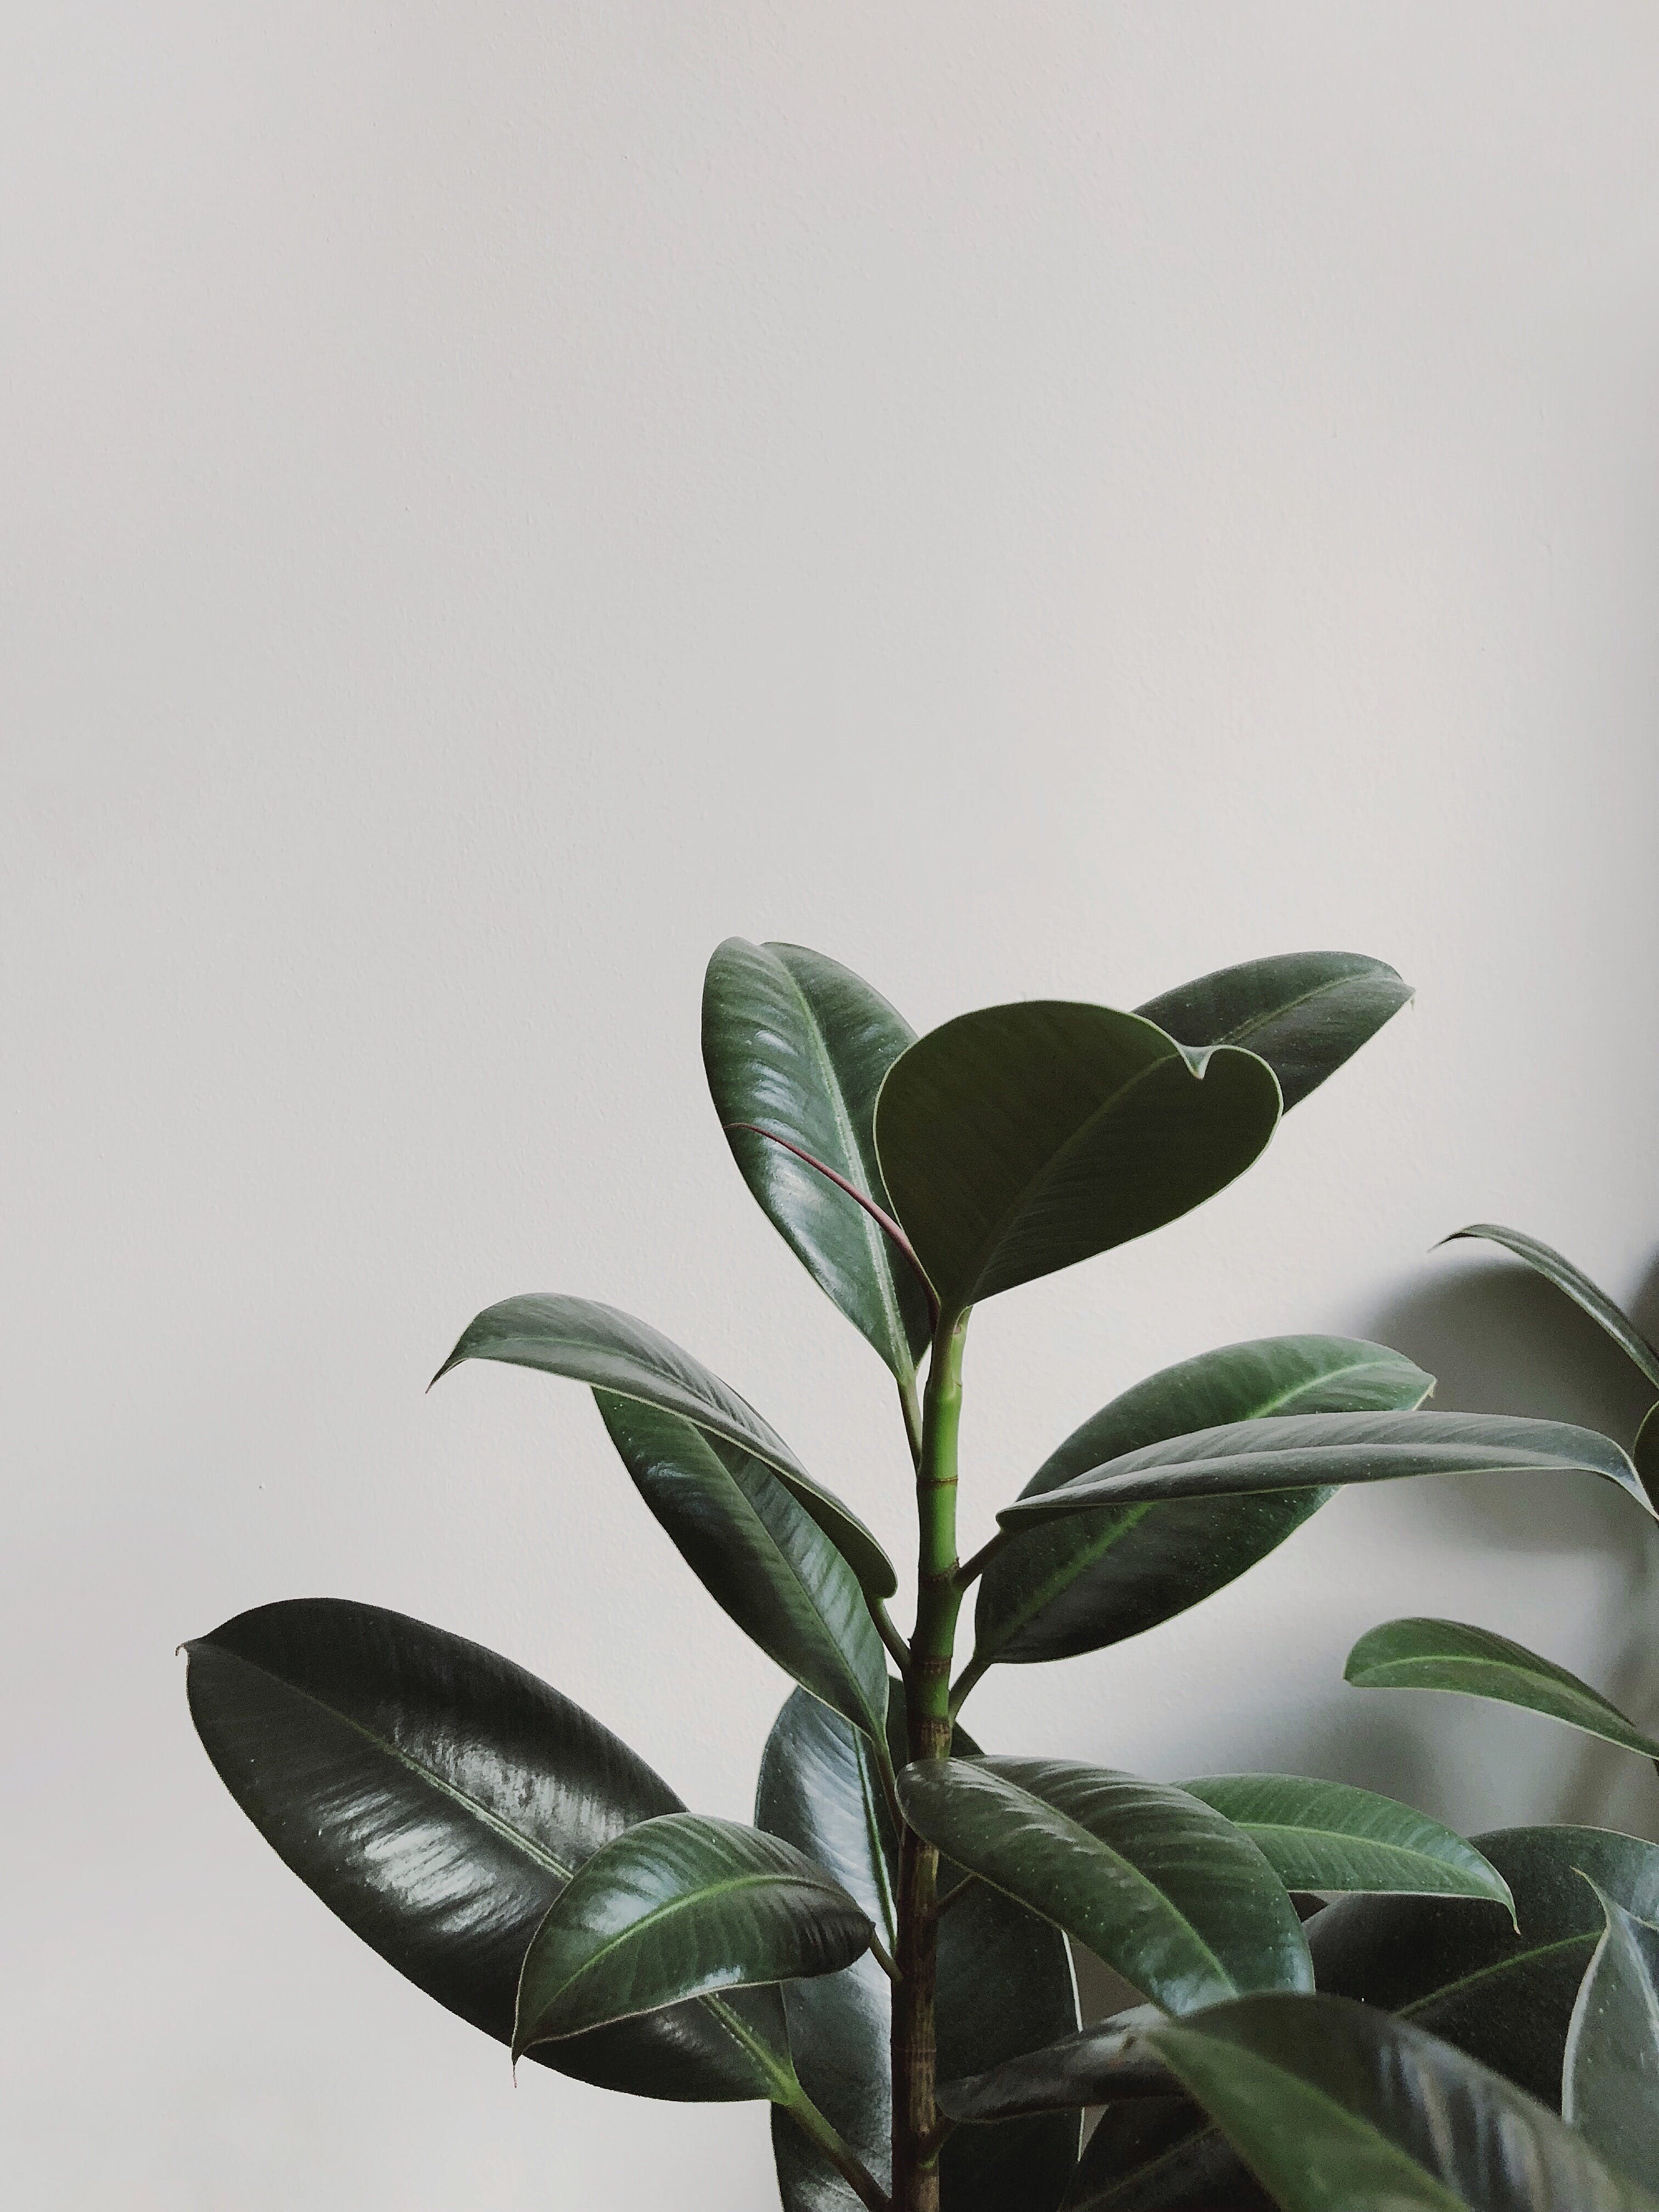 Close-up Photography of Rubber Plant